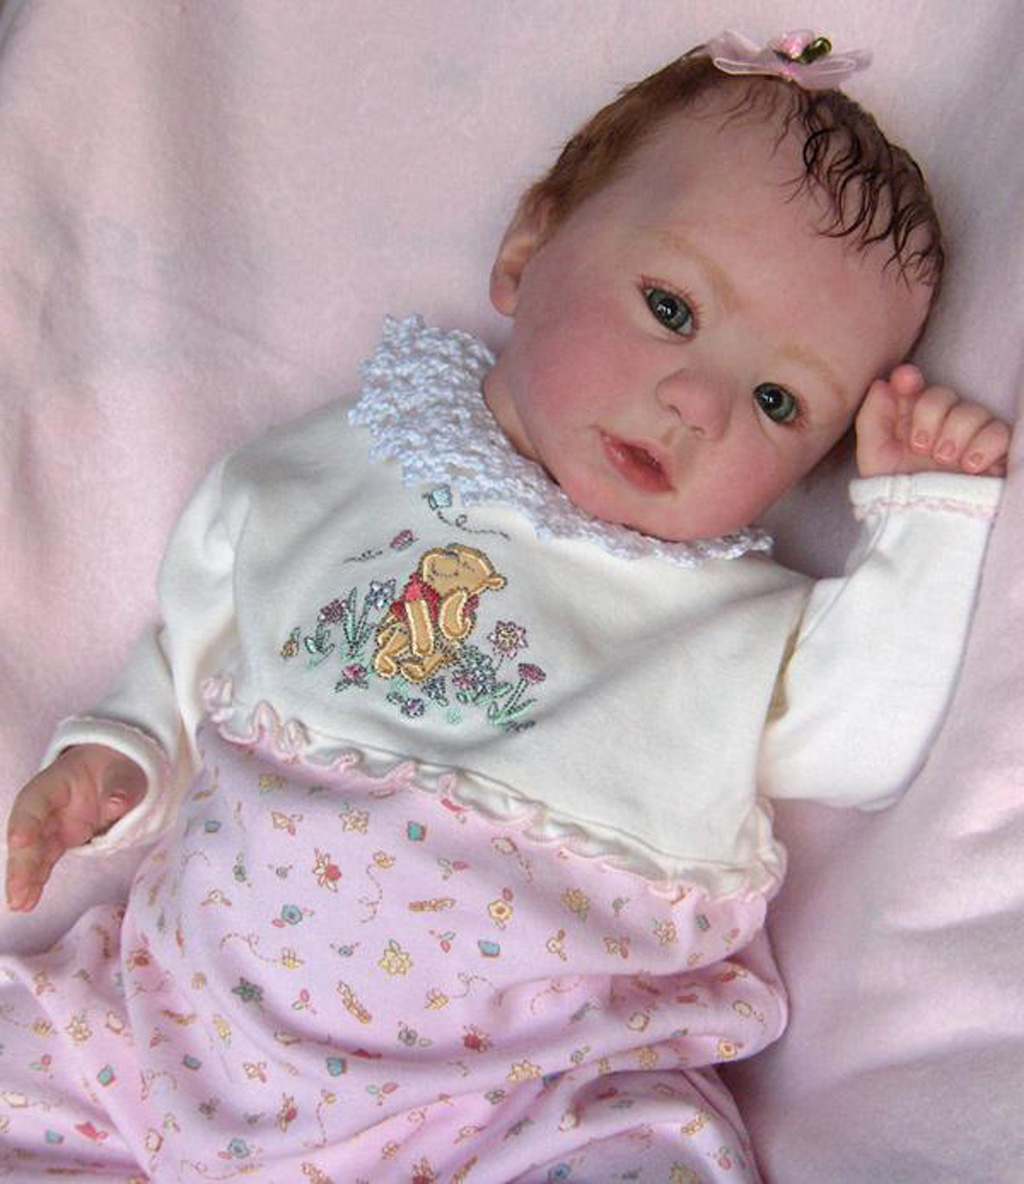 Cute Newborn Baby Dolls that Look Real